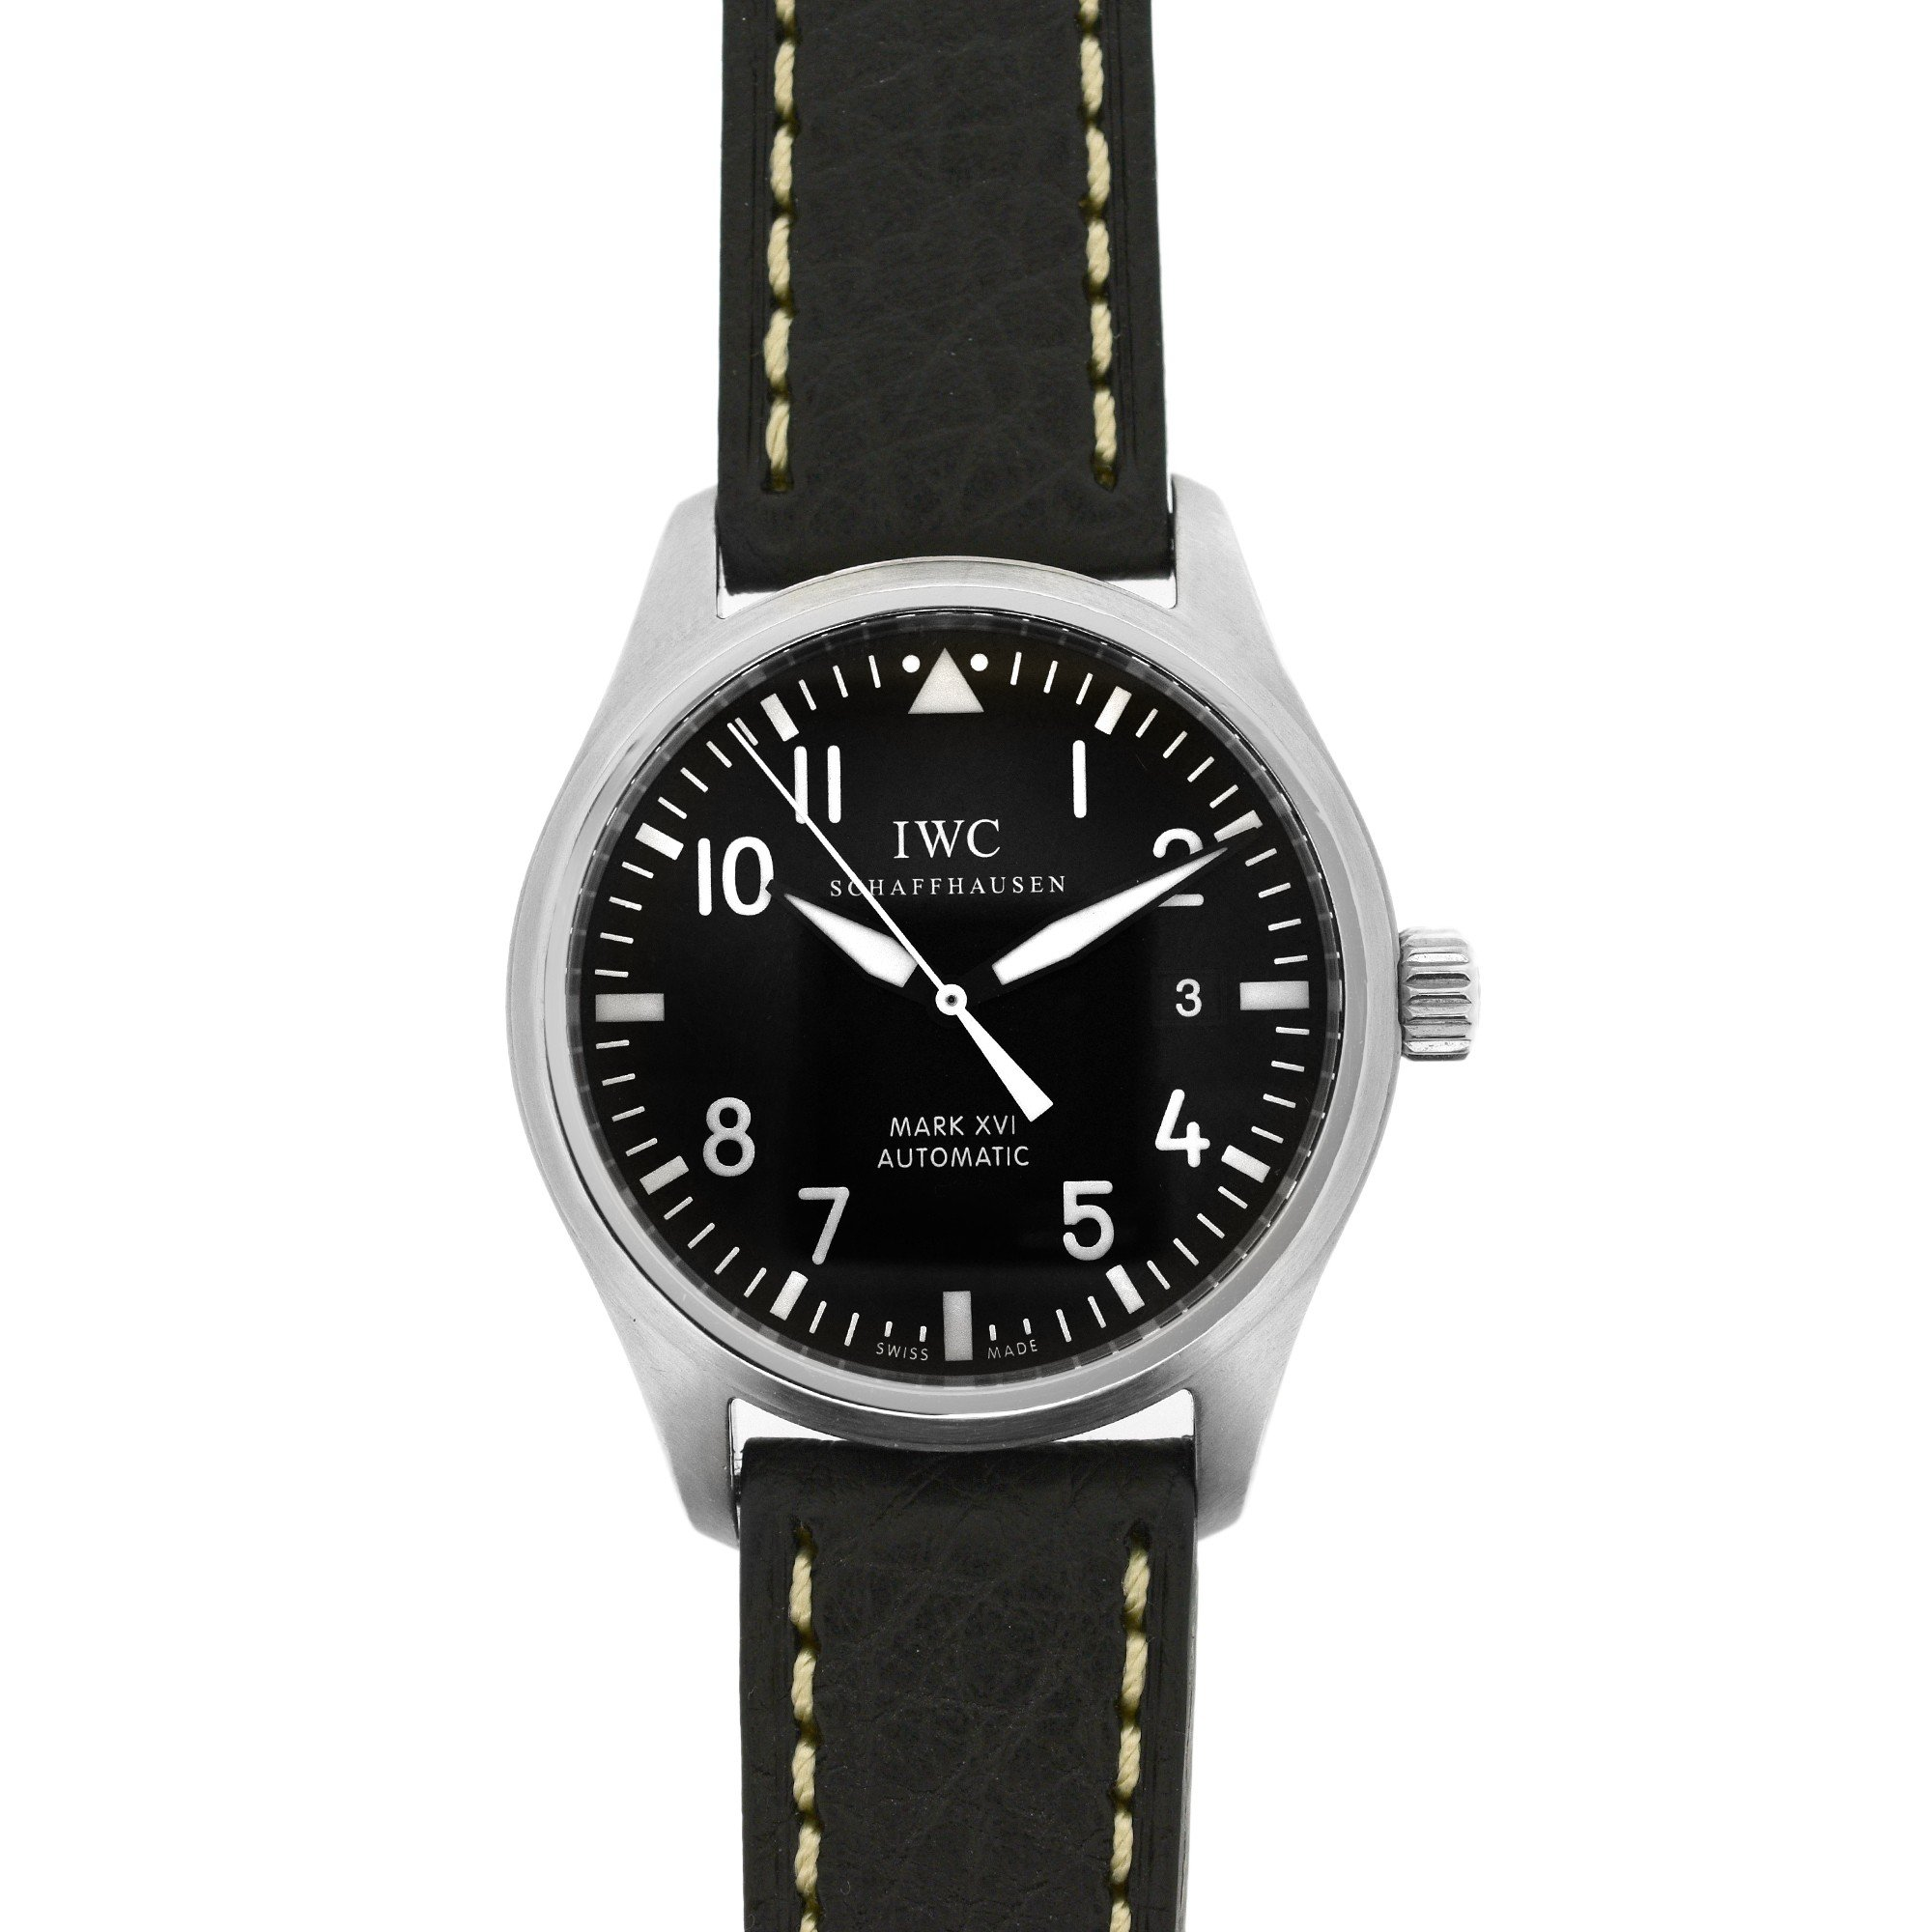 IWC MARK XVI automatic-self-wind mens Watch IW3255-01 Strap (Certified Pre-owned)